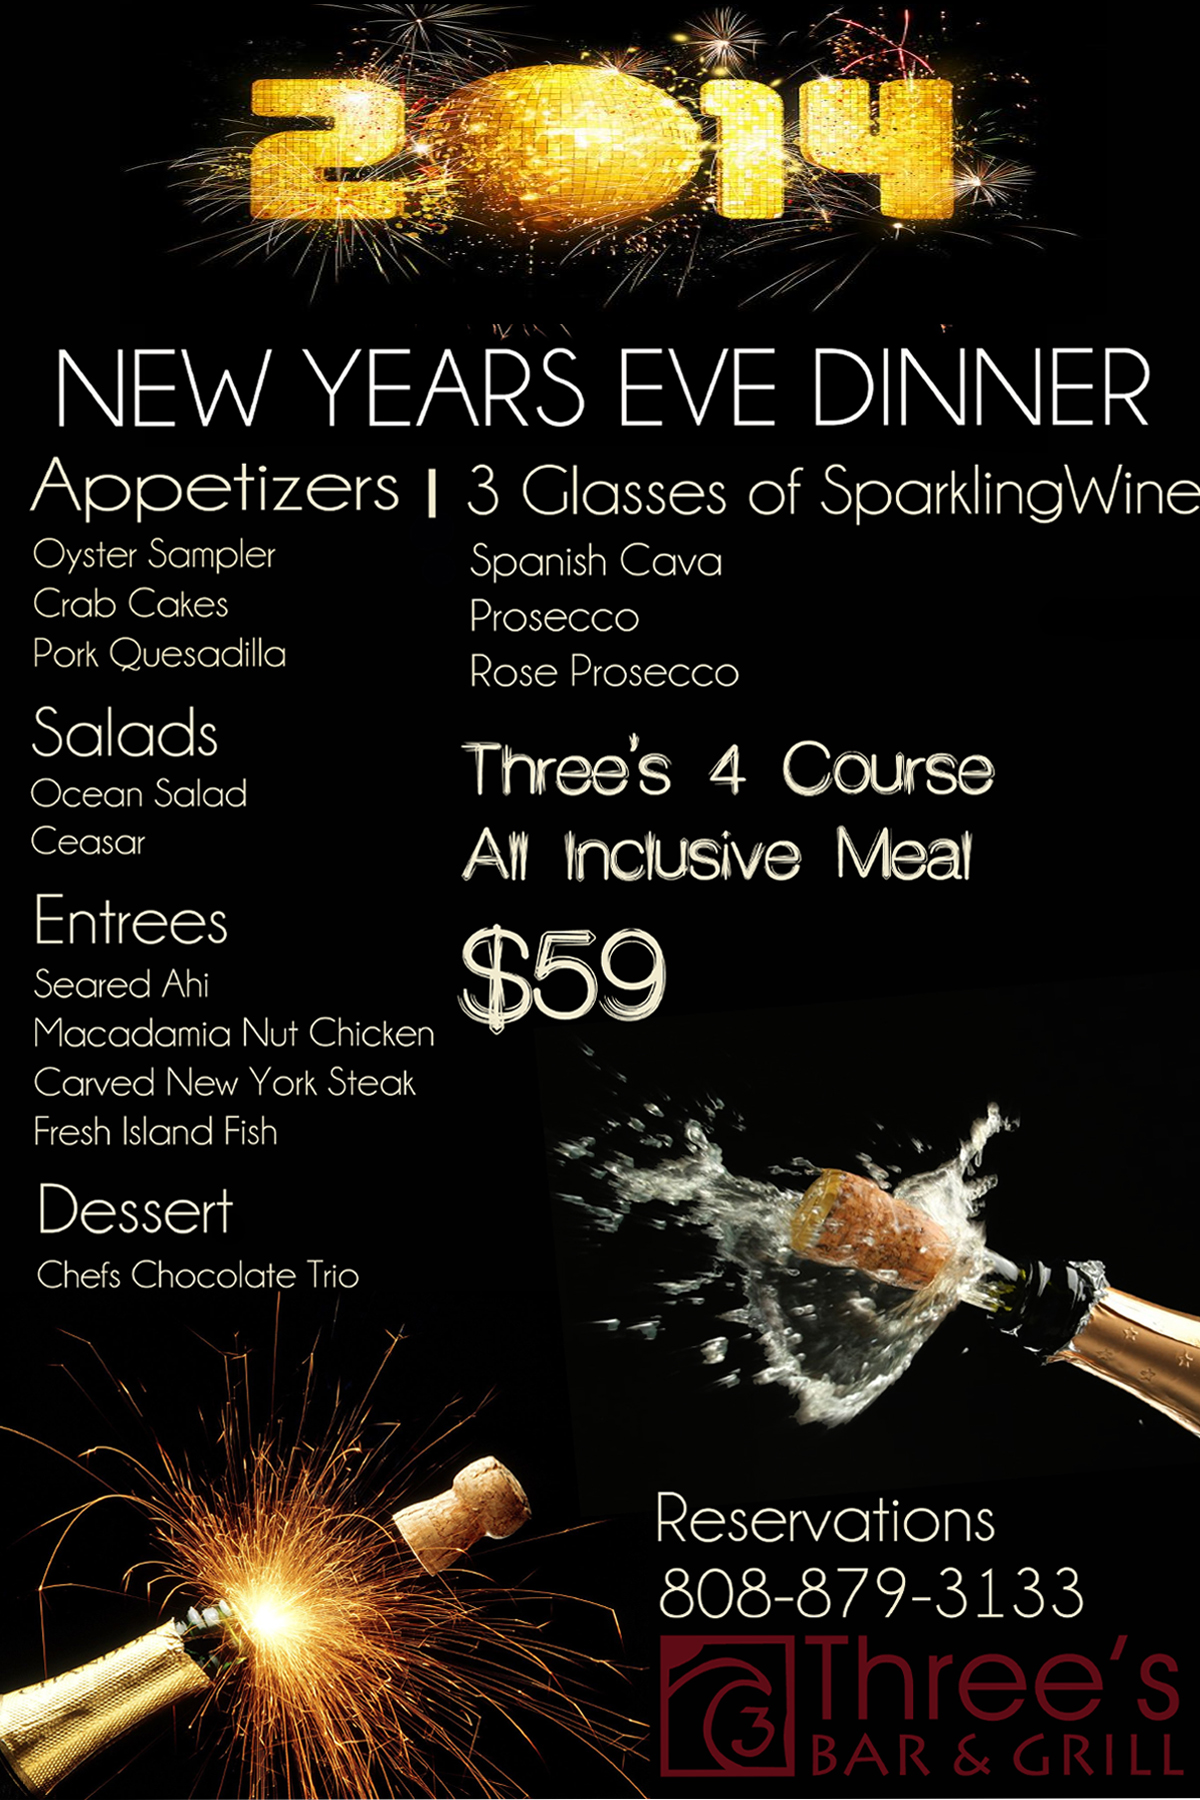 new years eve dinner menu